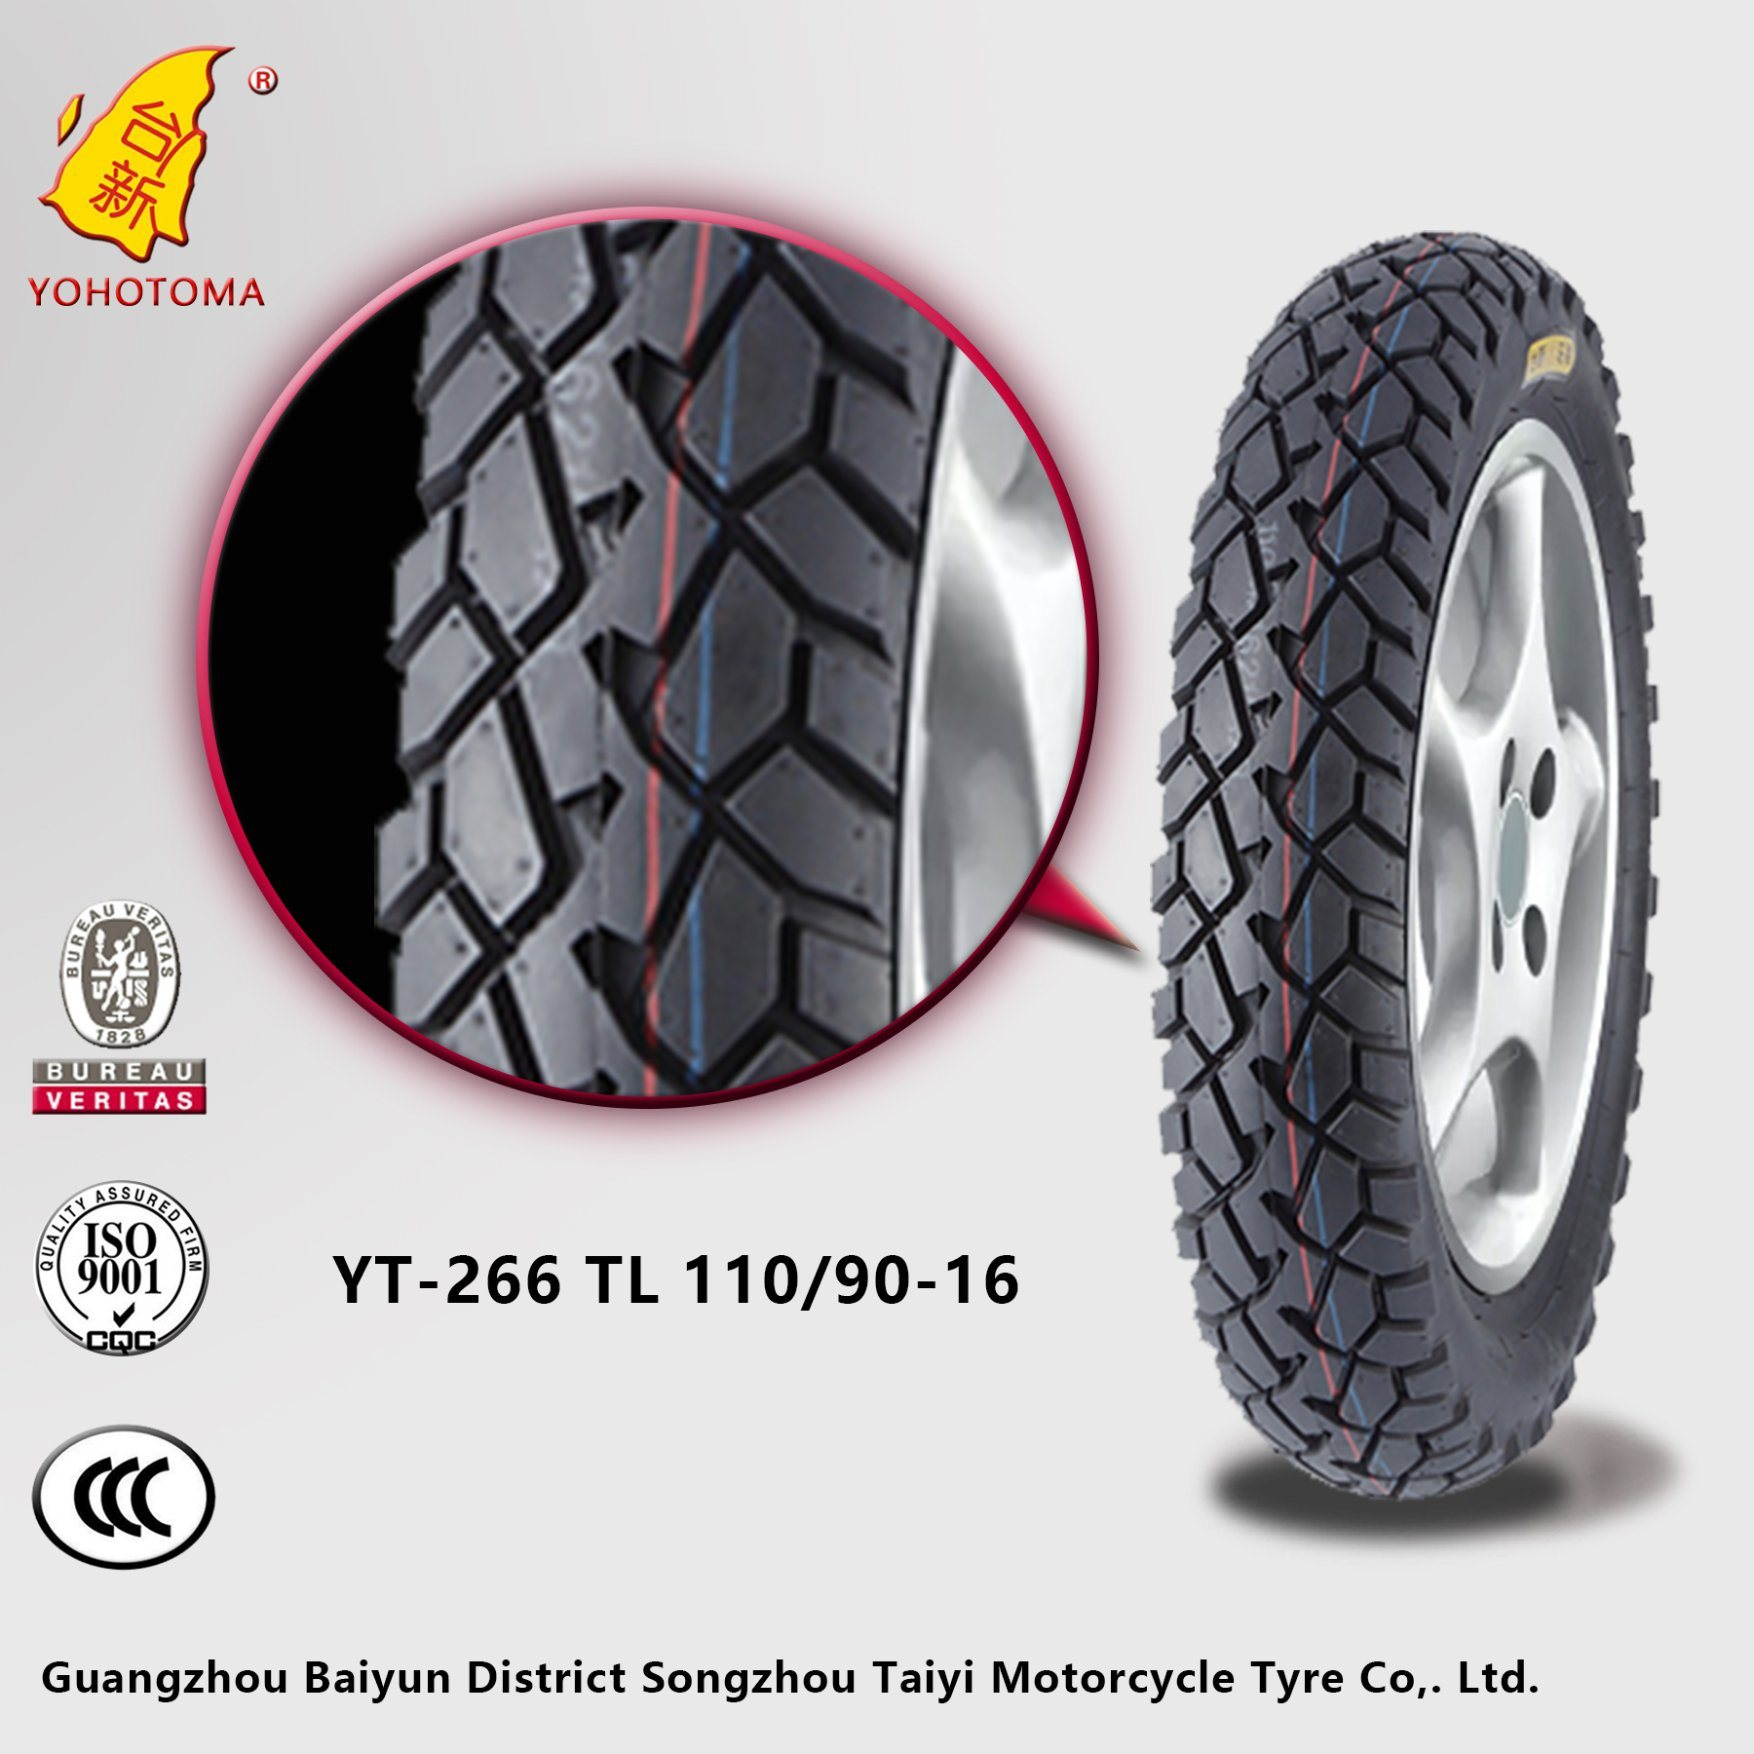 China Cheap Price Top Quality Motor Tire Yt-266 Tl 110/90-16